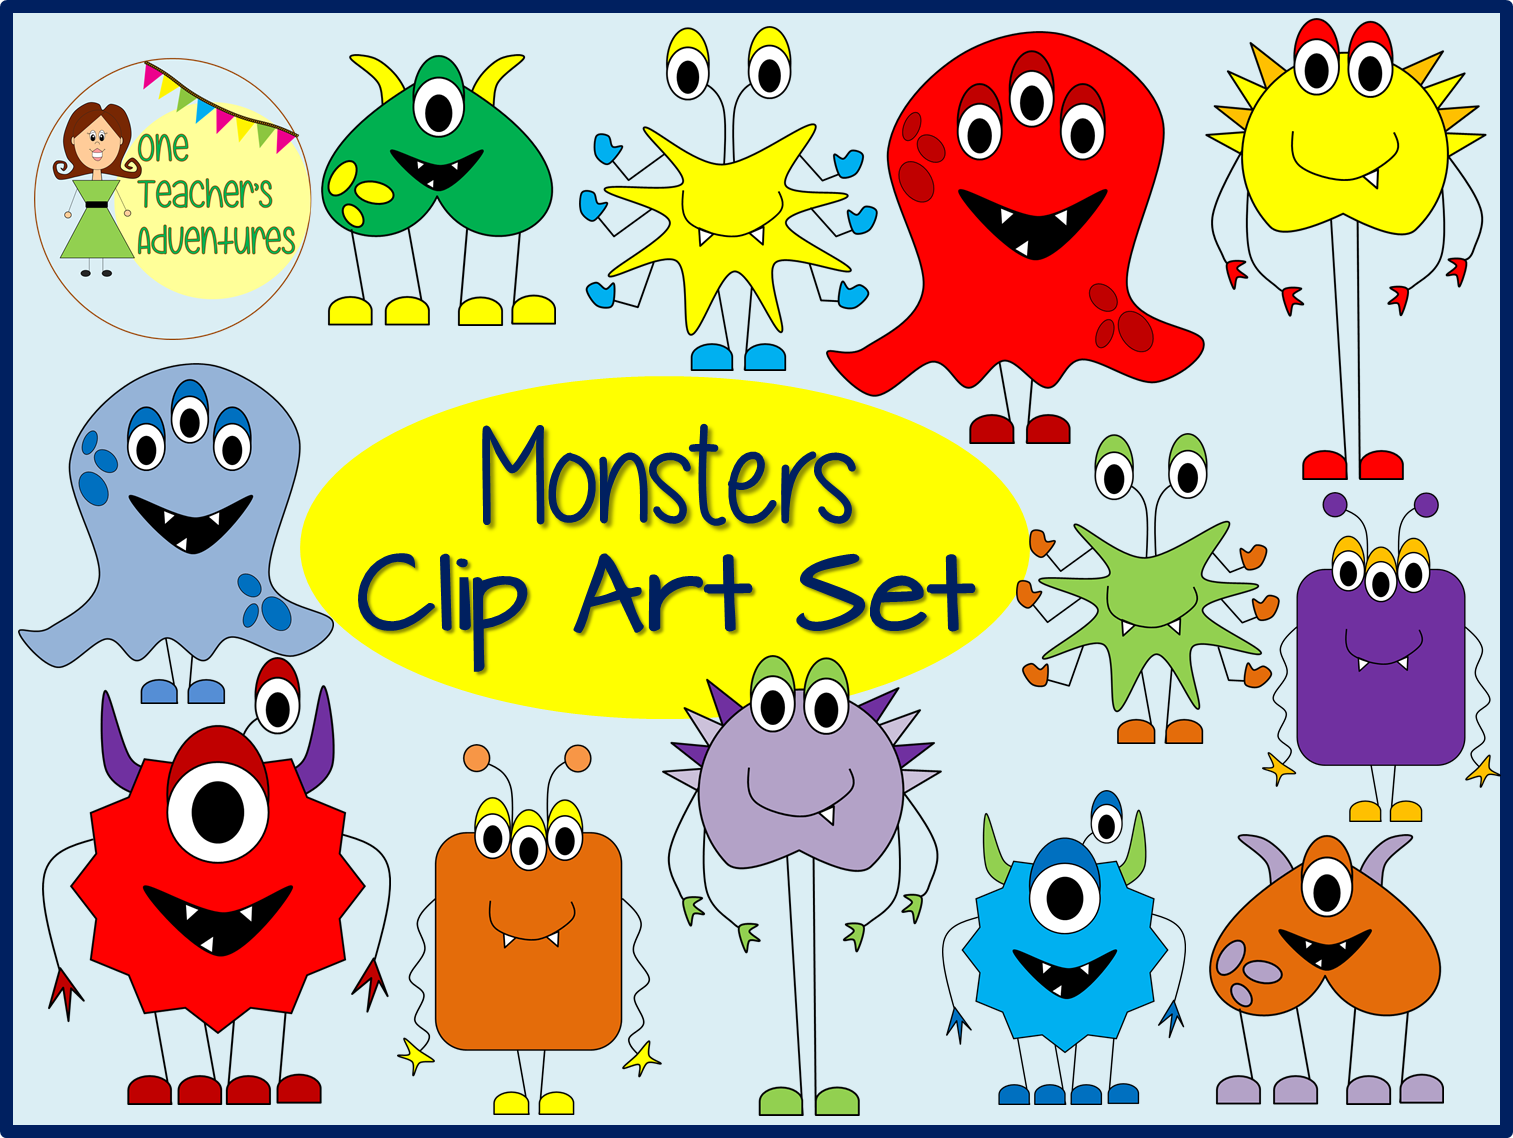 http://www.teacherspayteachers.com/Product/Monsters-Clip-Art-1408671